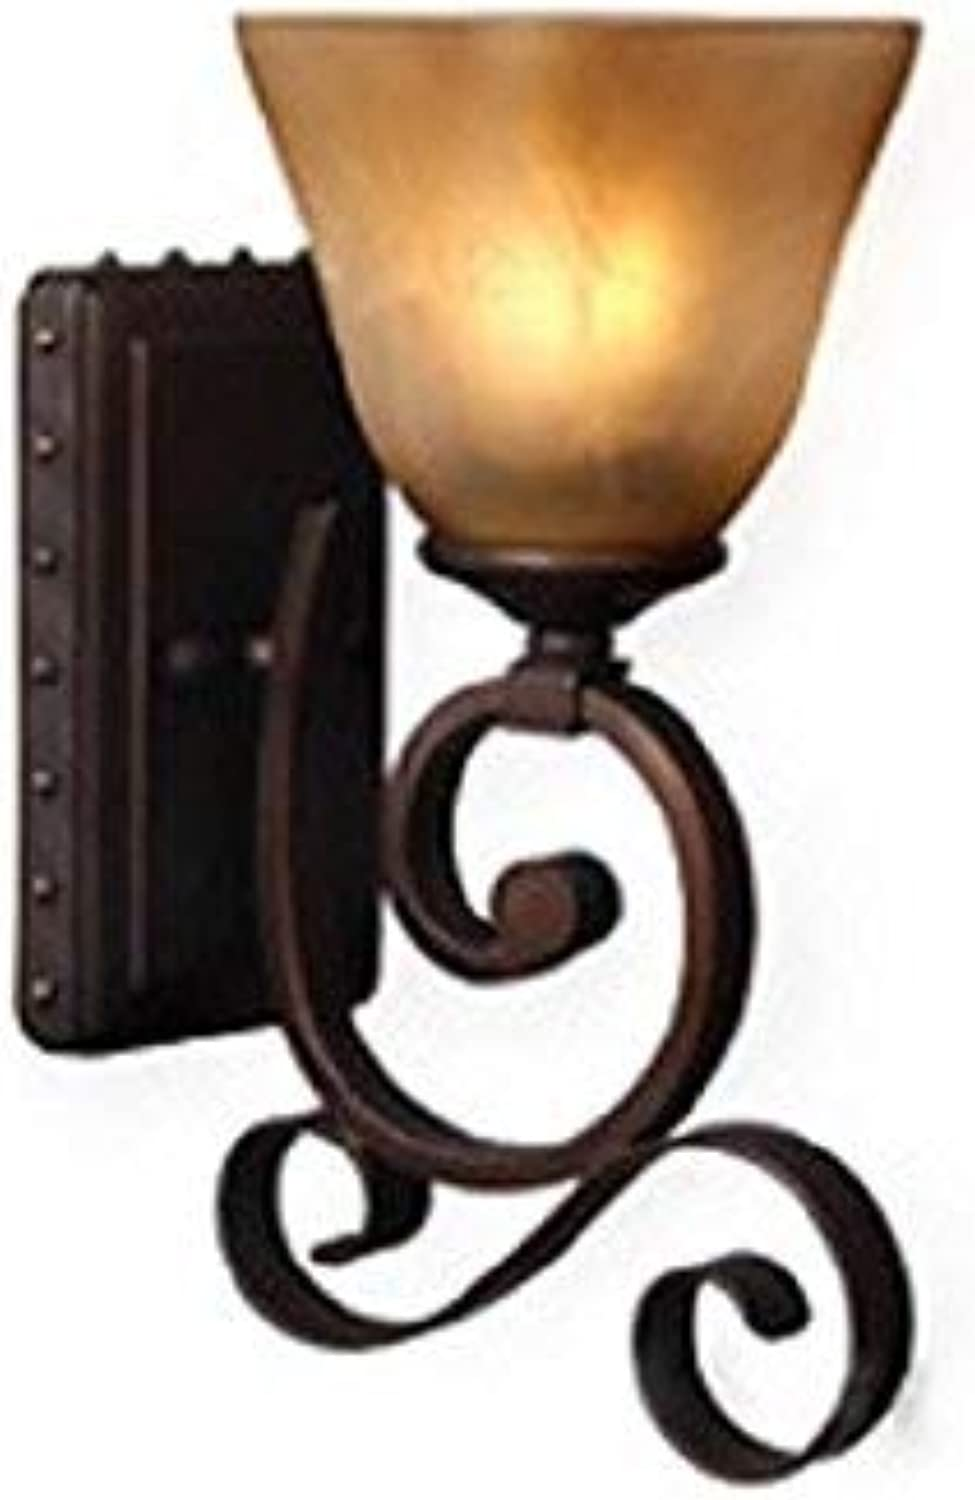 WALL LIGHT HOME Bathroom Sink Basin Tap Brass Mixer Tap Washroom Mixer Faucet Shower dark wall mounted thermostatic showers packaged cold water taps full copper booster s